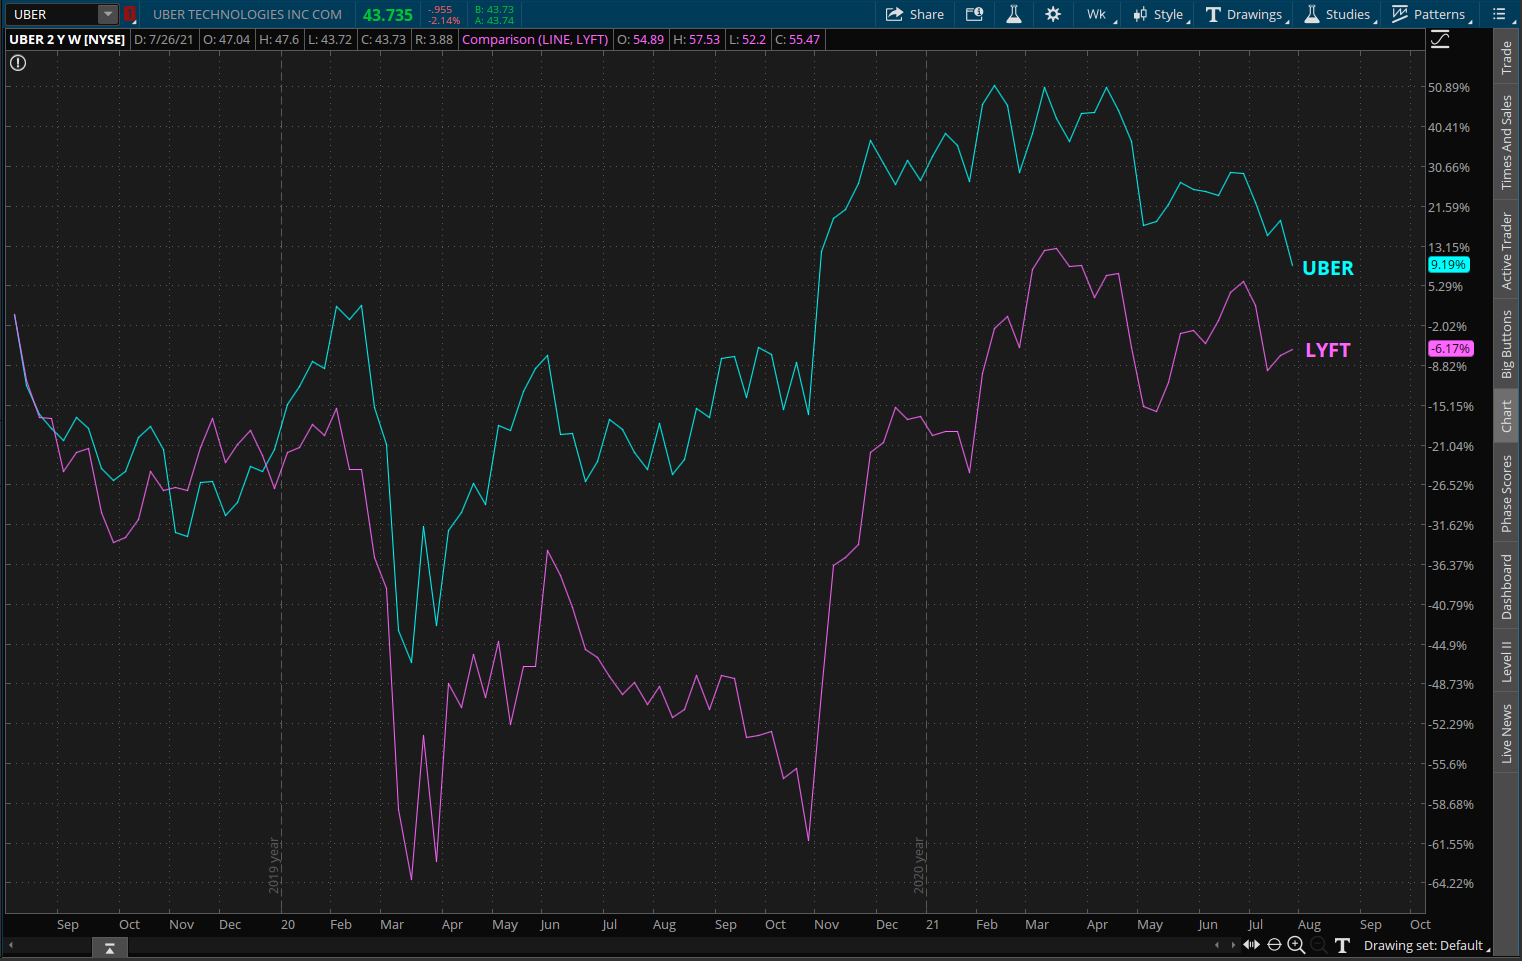 Uber And Lyft Combined Chart.